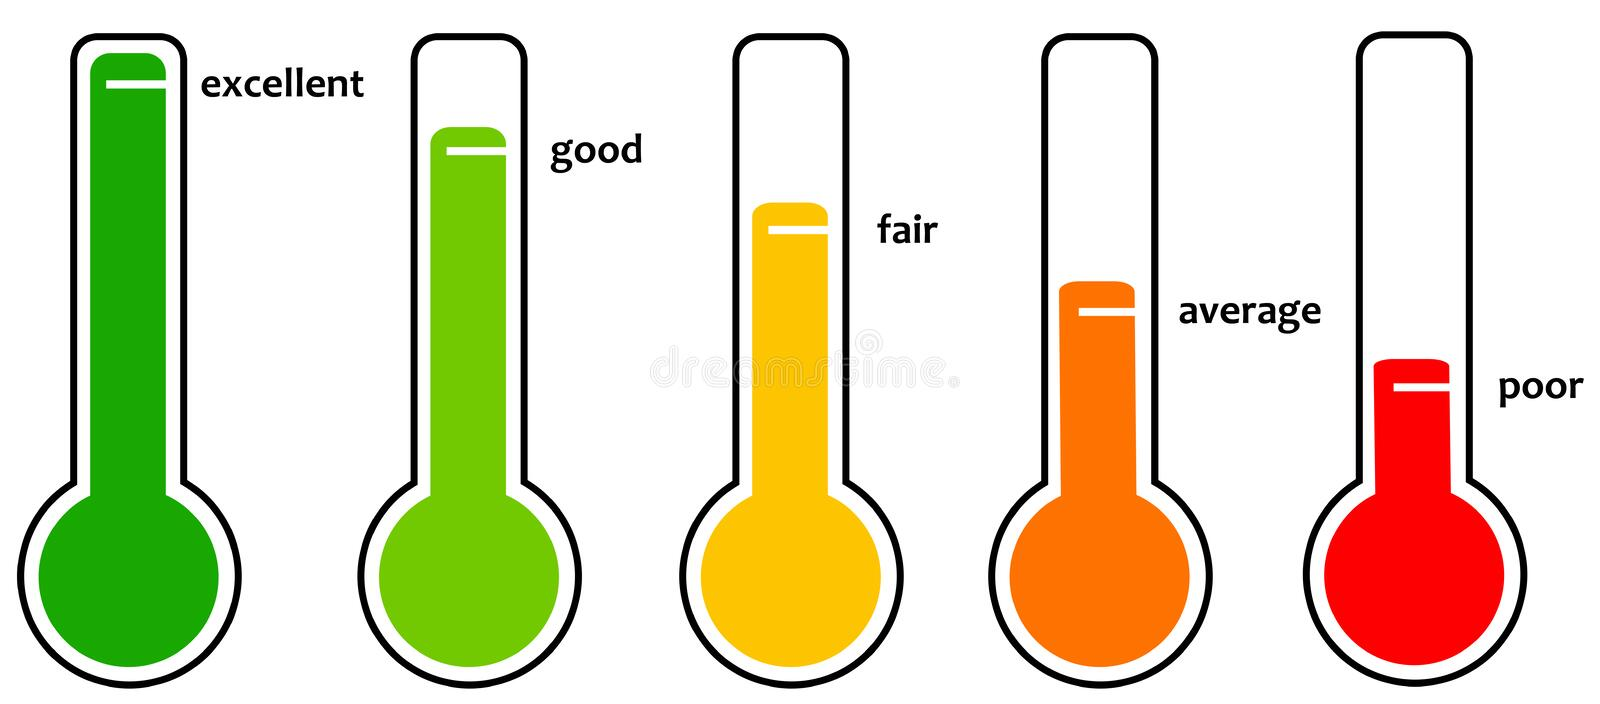 Thermometer scores. Scoring progress in different fields by using thermometer scores stock illustration